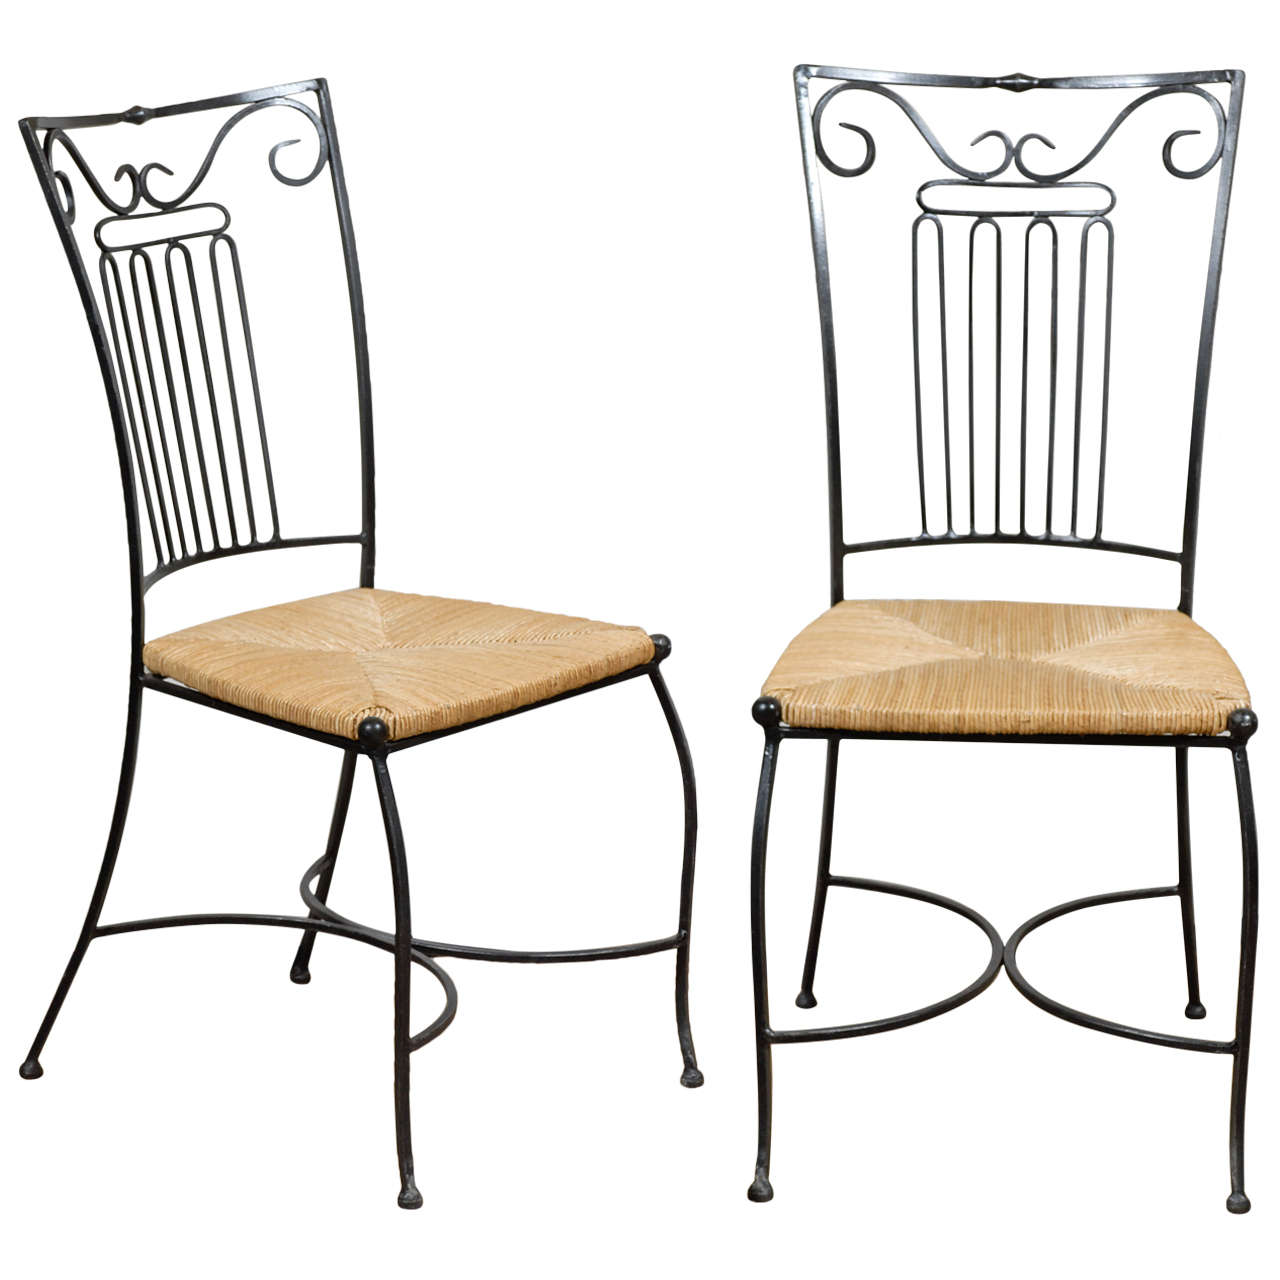 Pair of Iron Chairs with Rush Seats